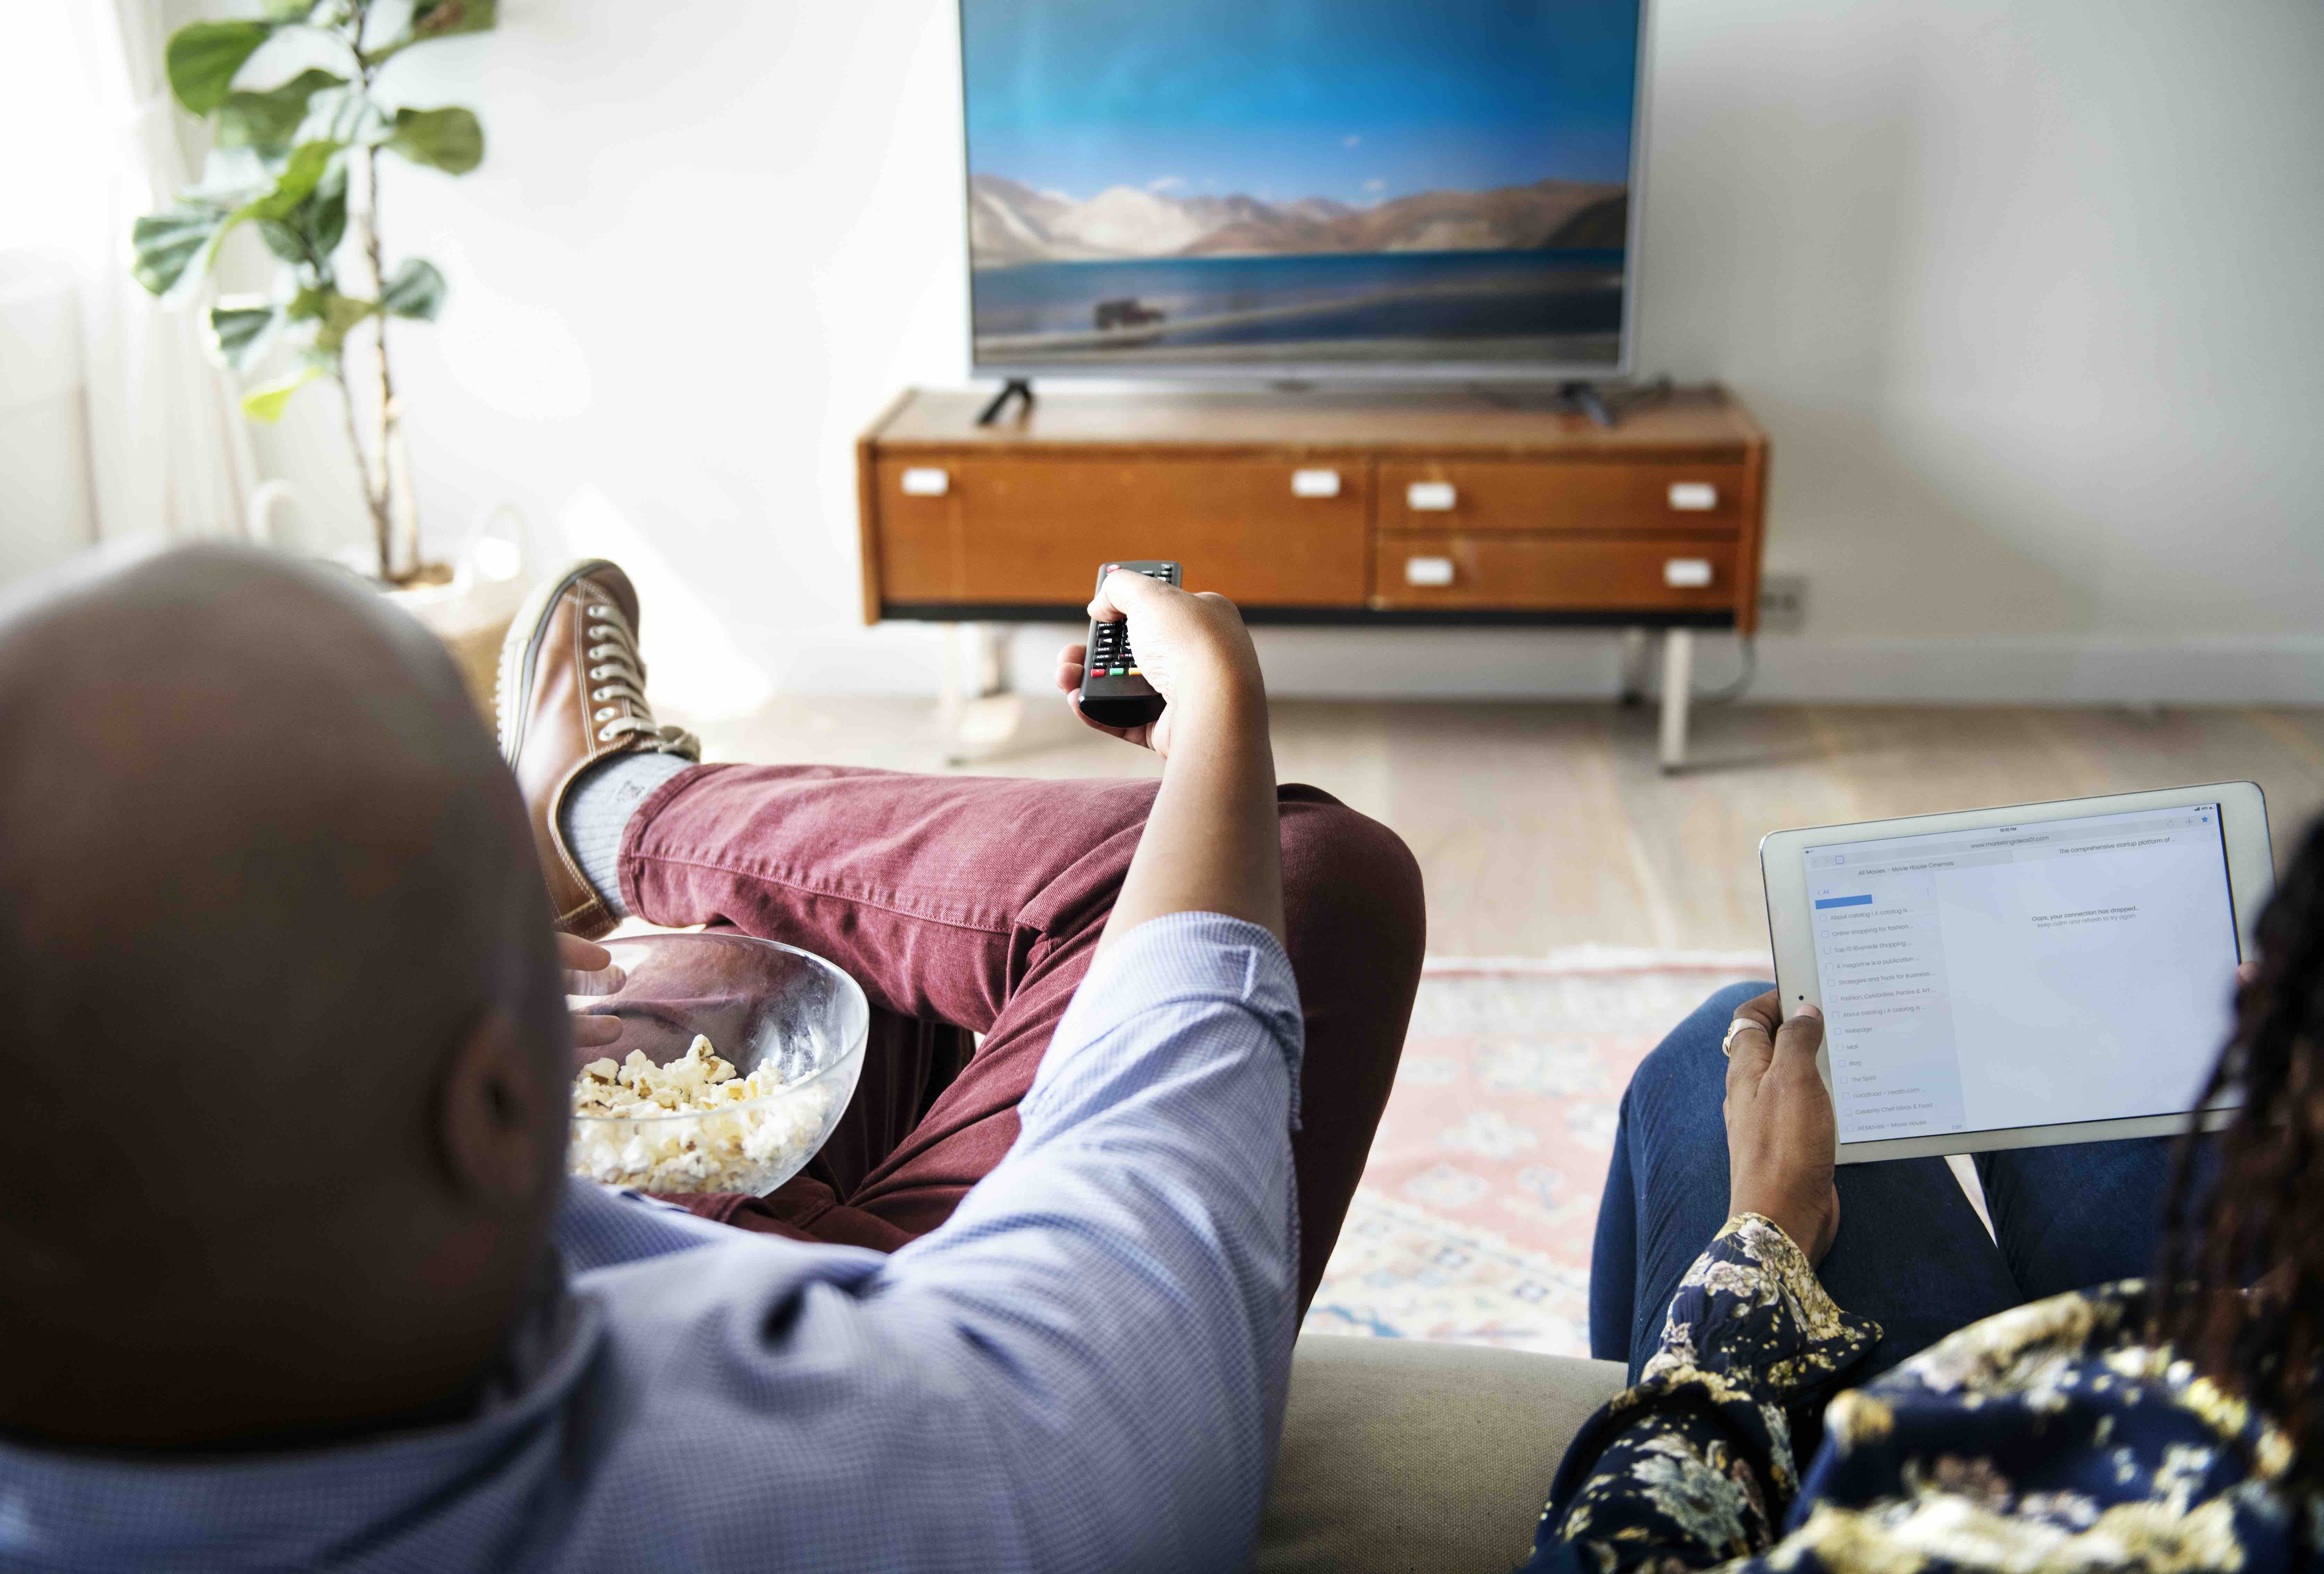 Viewing television and video content on multiple devices